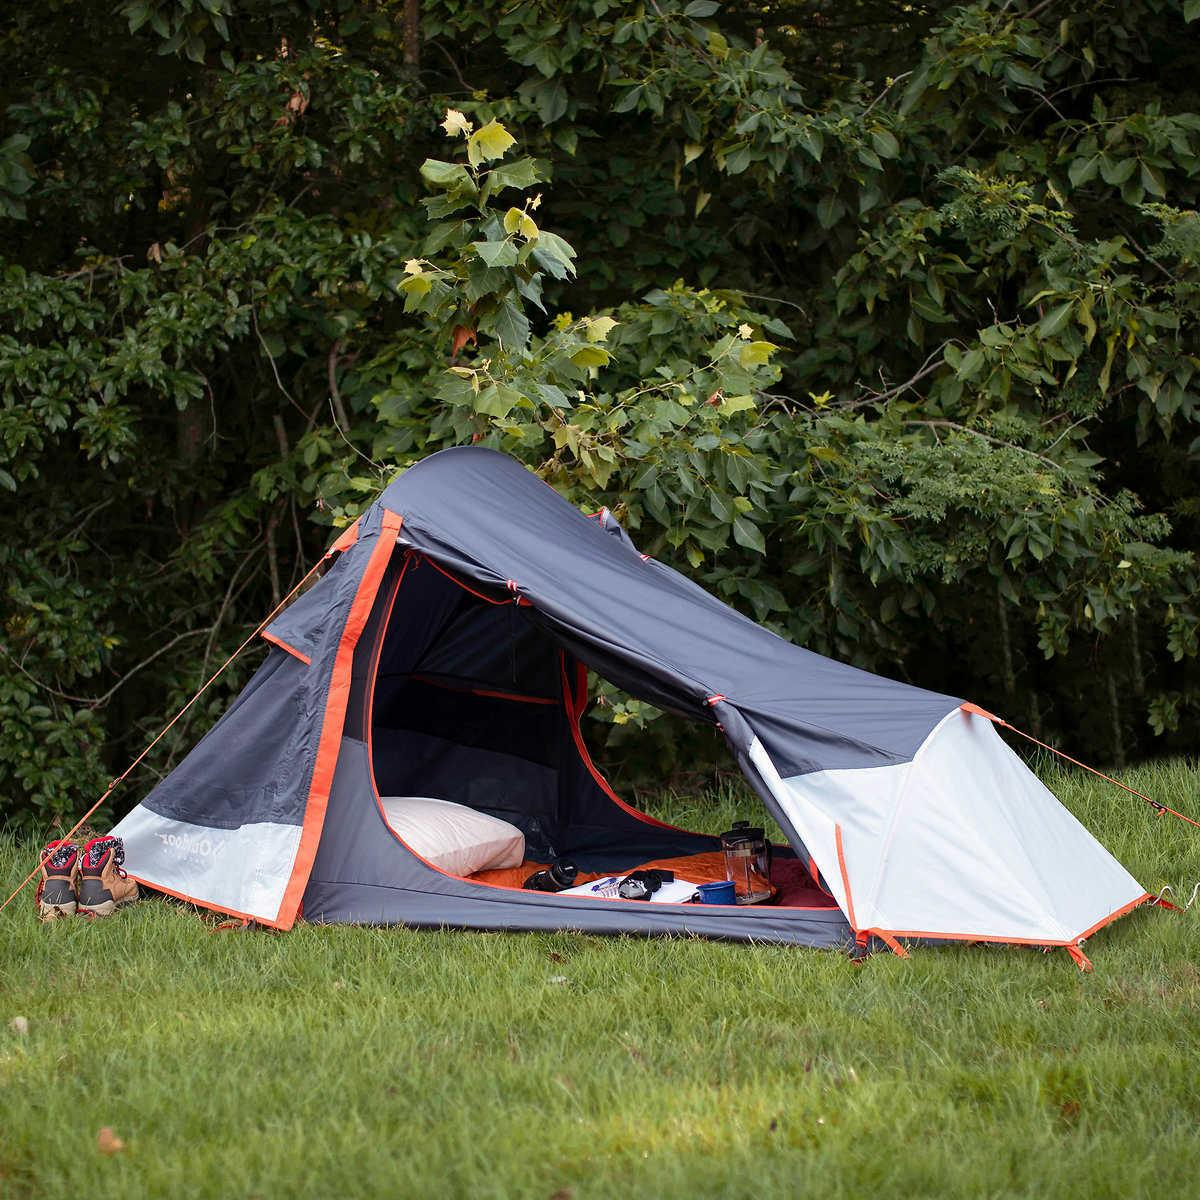 2 person backpacking tent lightweight waterproof tub